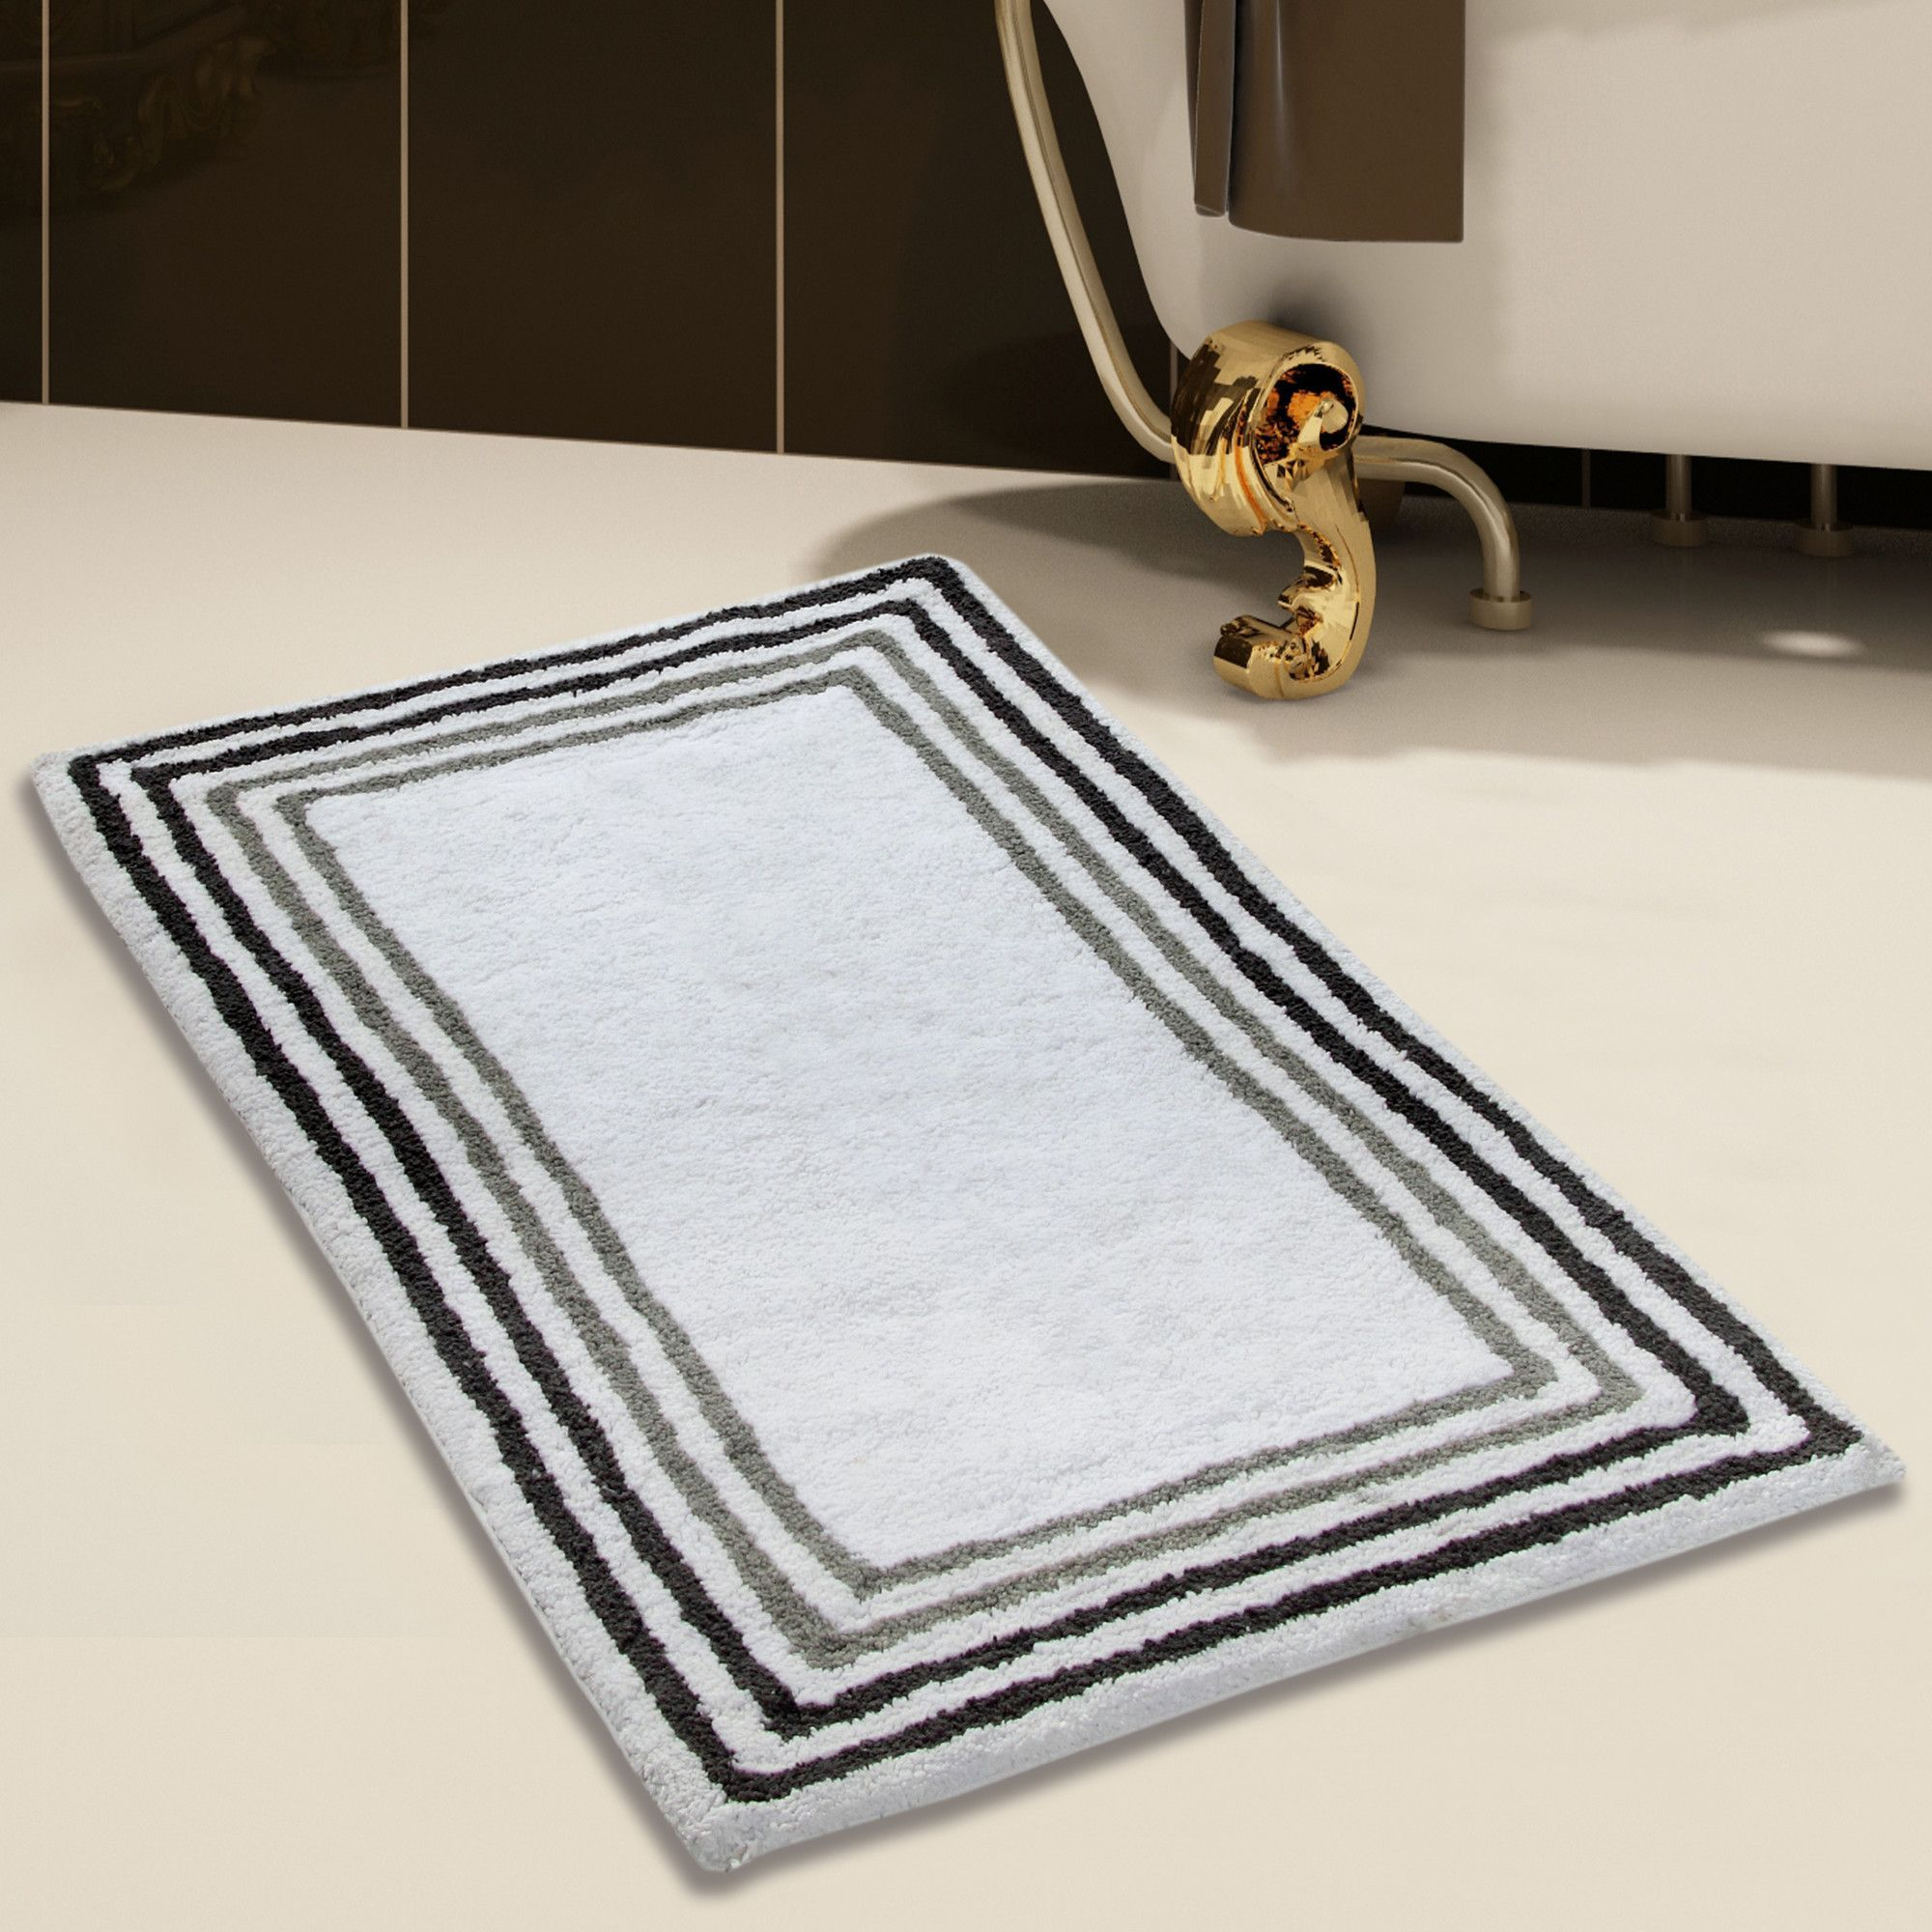 100 Soft Cotton 2 Piece Bath Rug Set Black Gold Bathroom Gold Bathroom